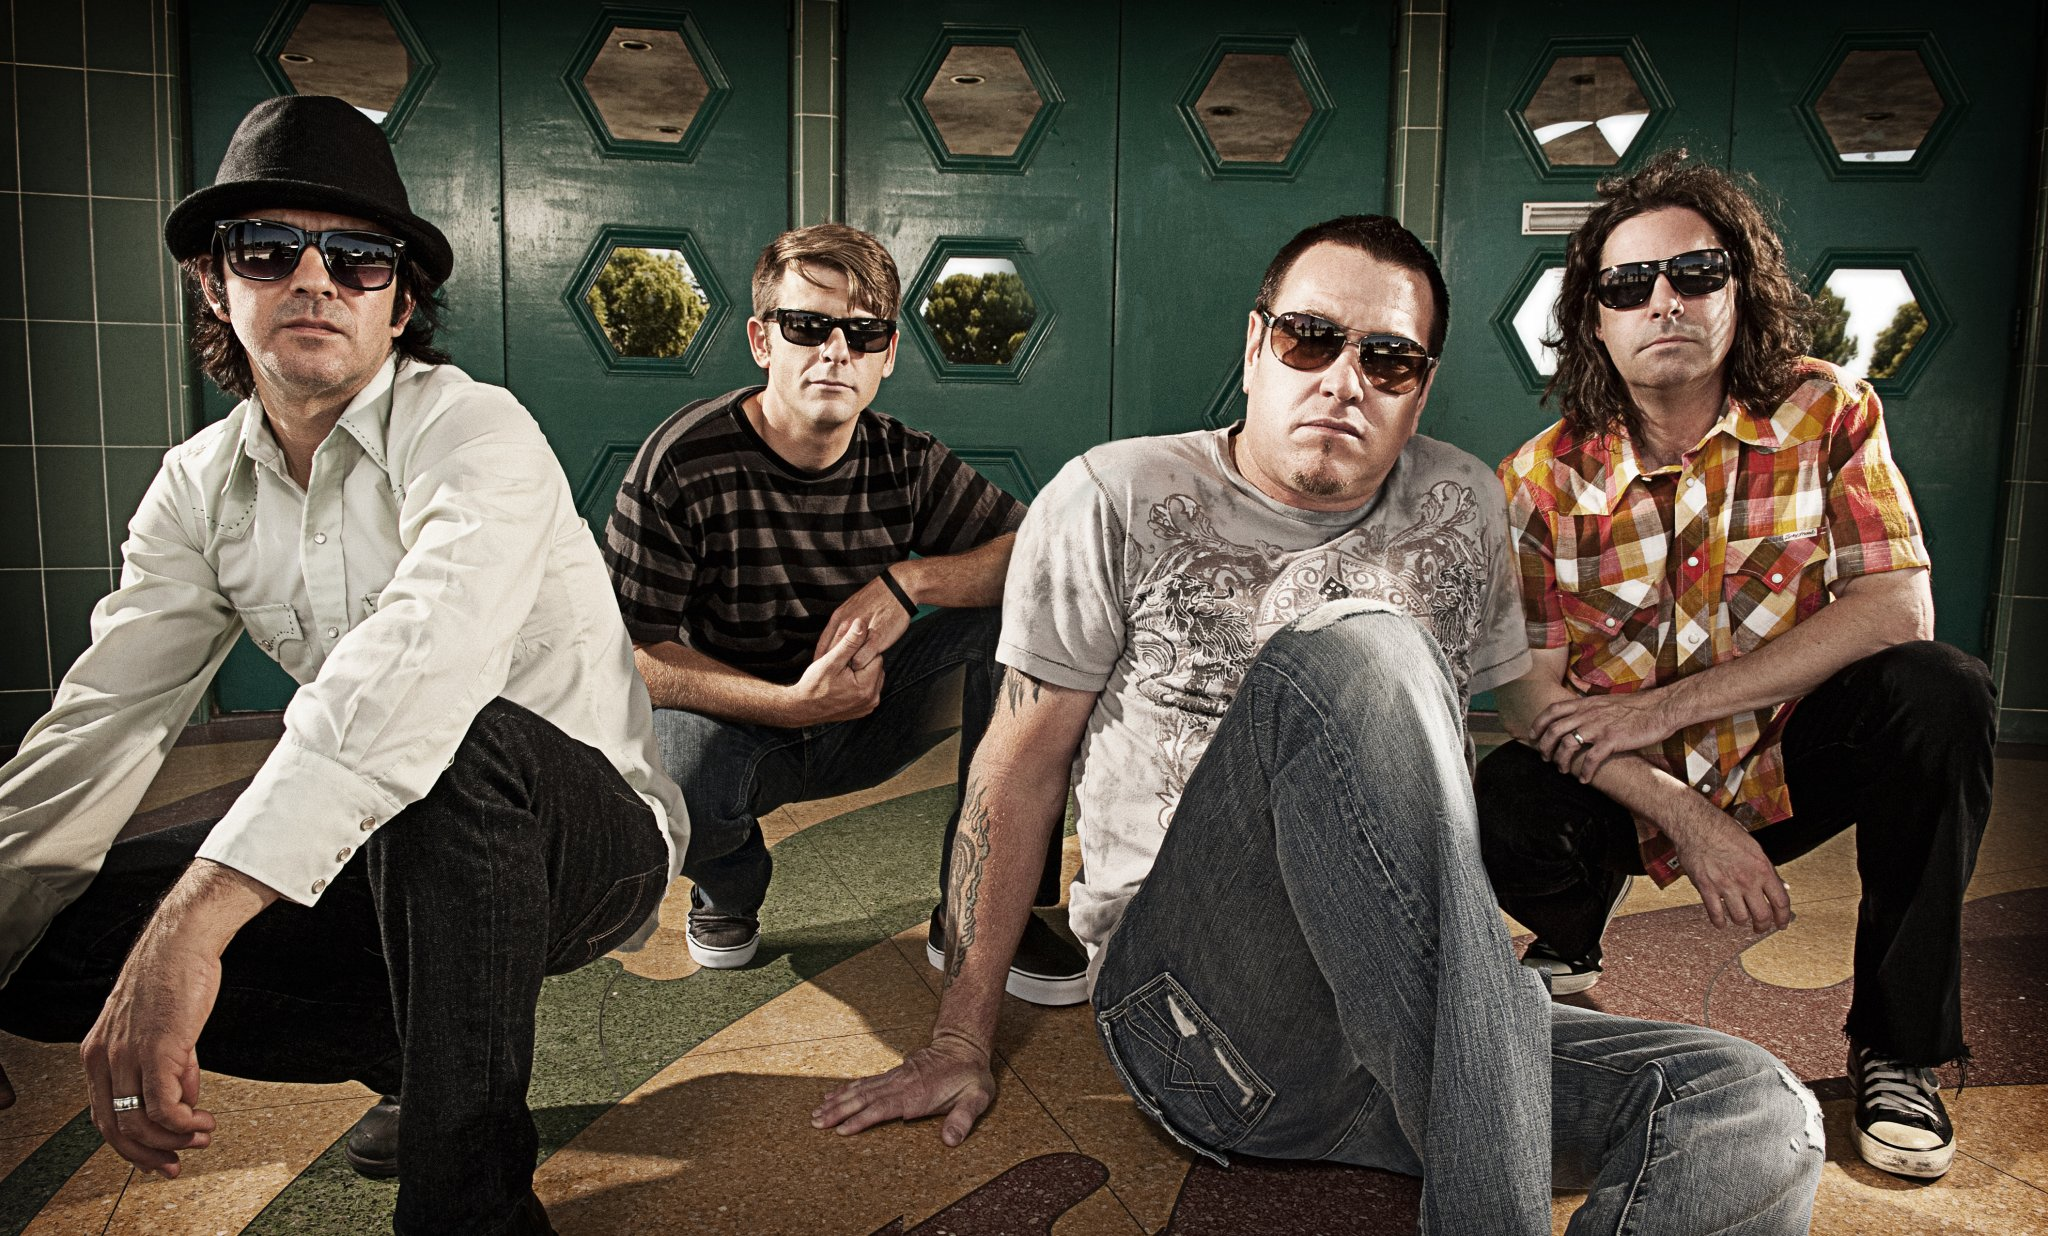 https://indulgemagazine.net/wp-content/uploads/2018/10/Smash-Mouth-IND-Mag.jpg